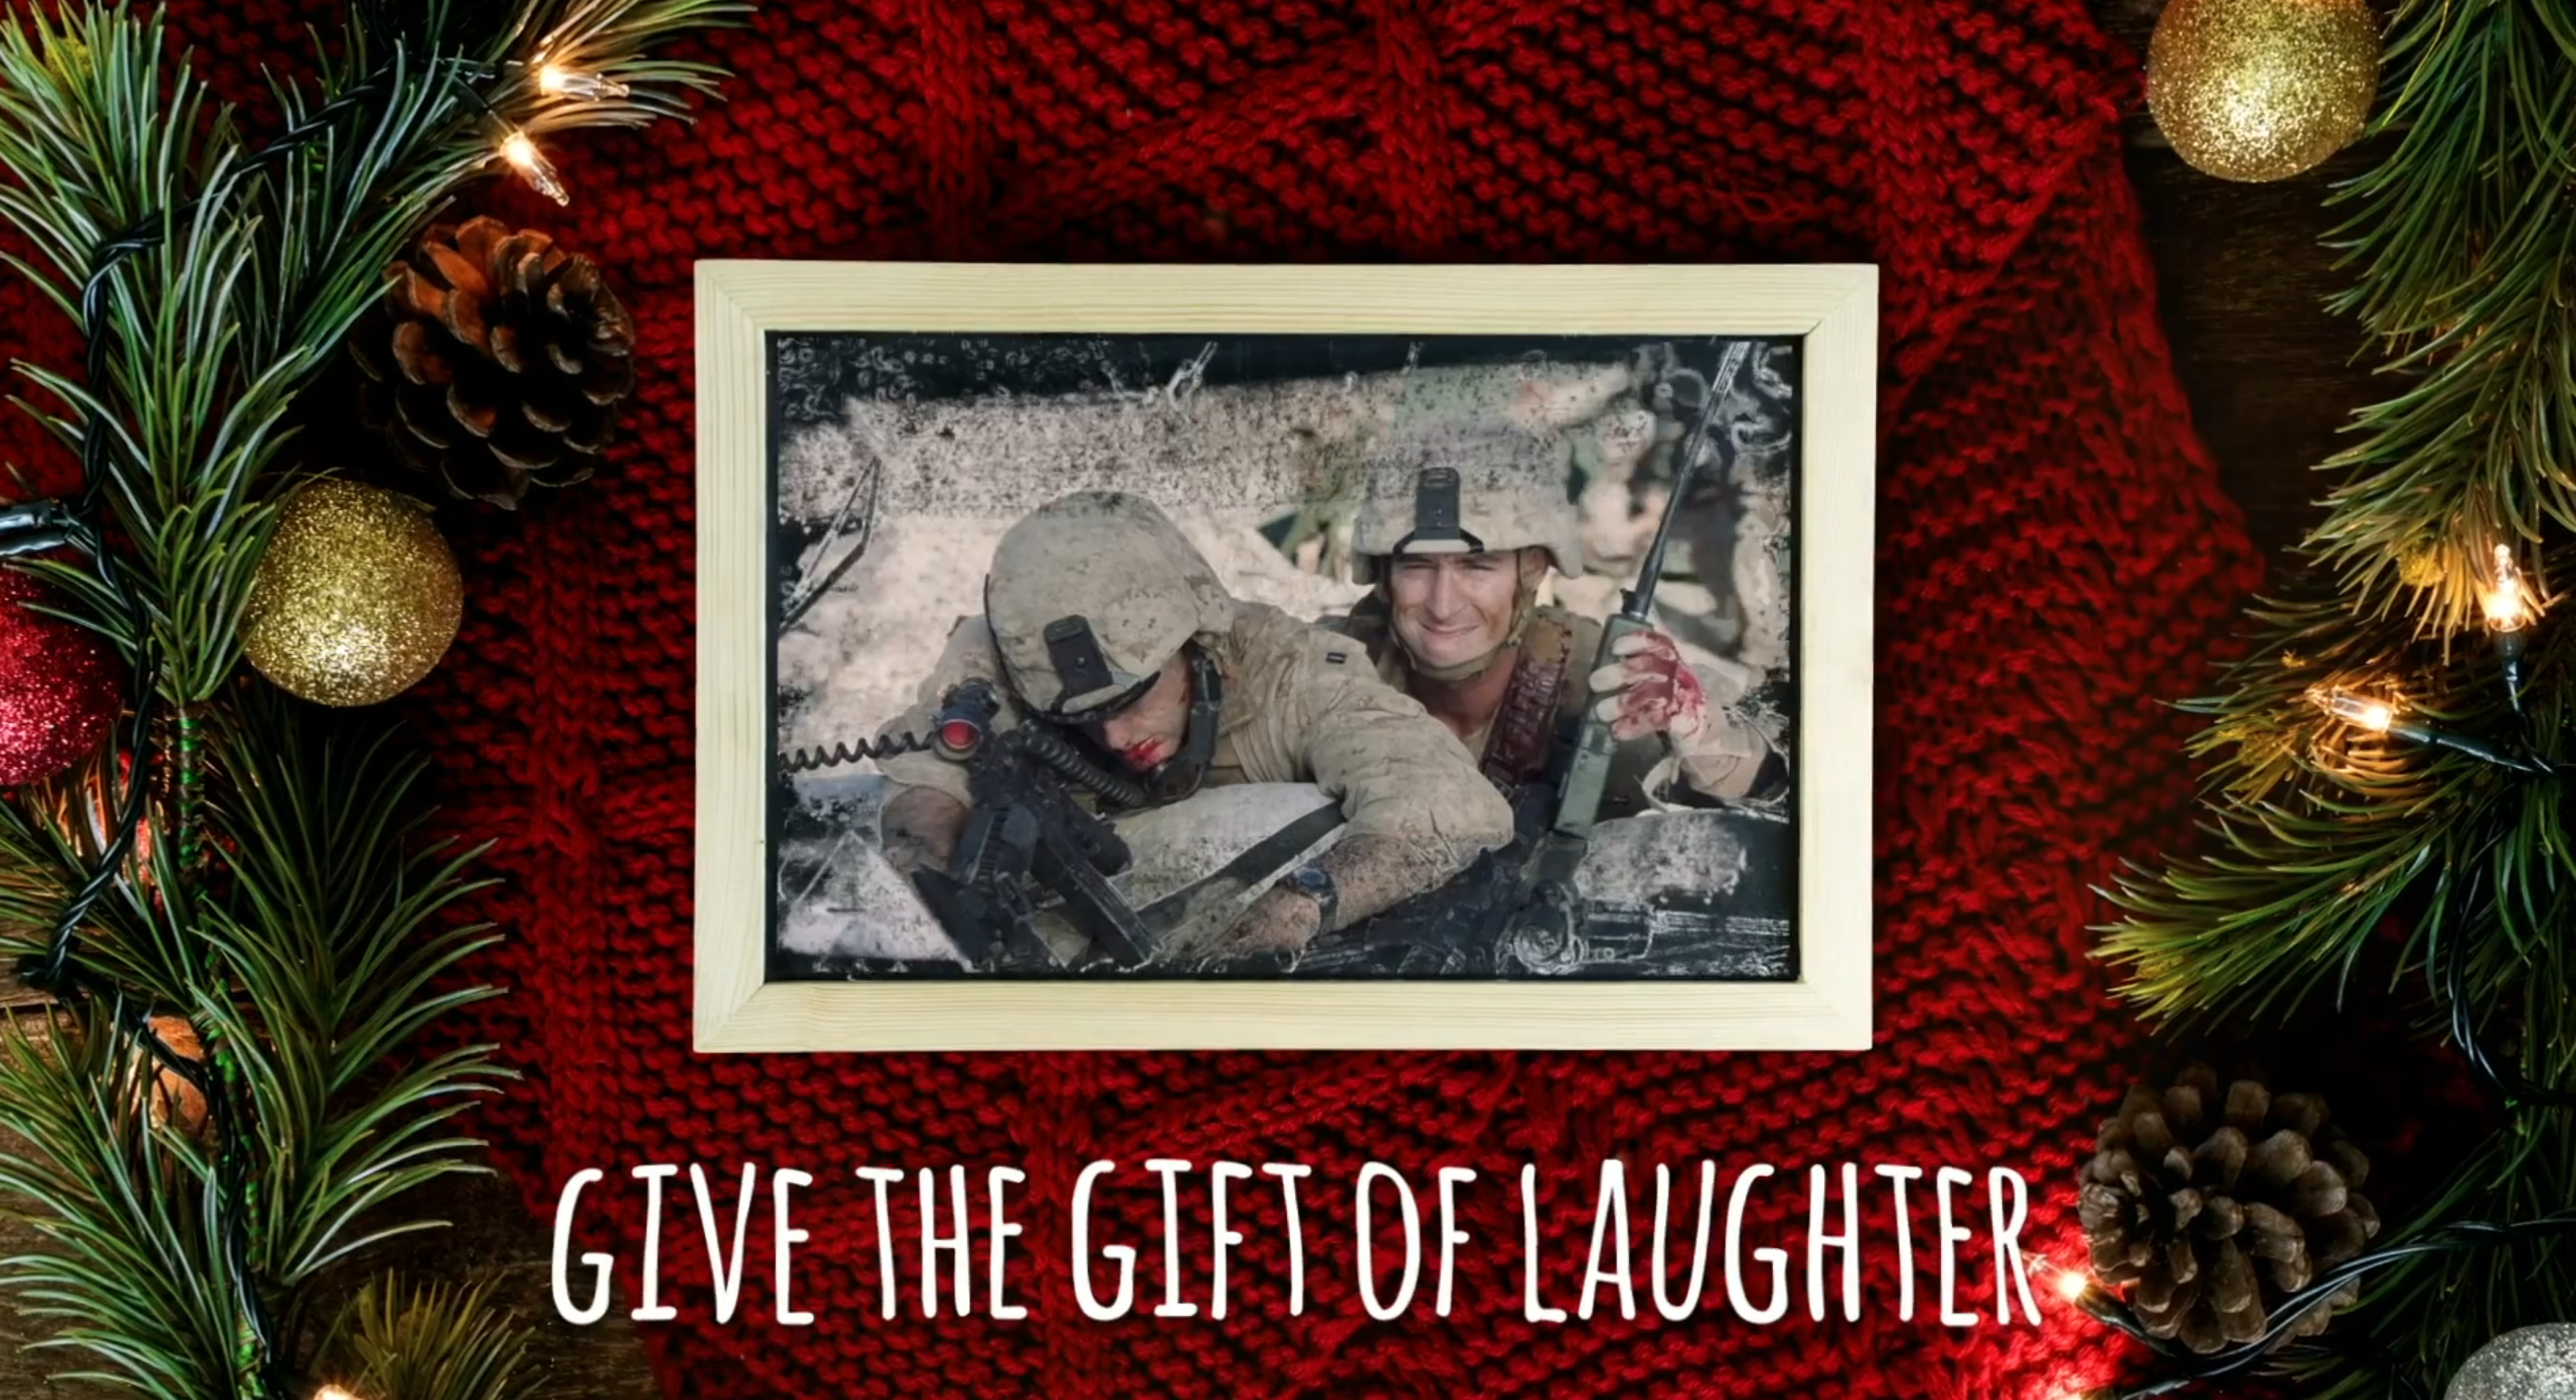 Two soldiers appear on a Christmas card.